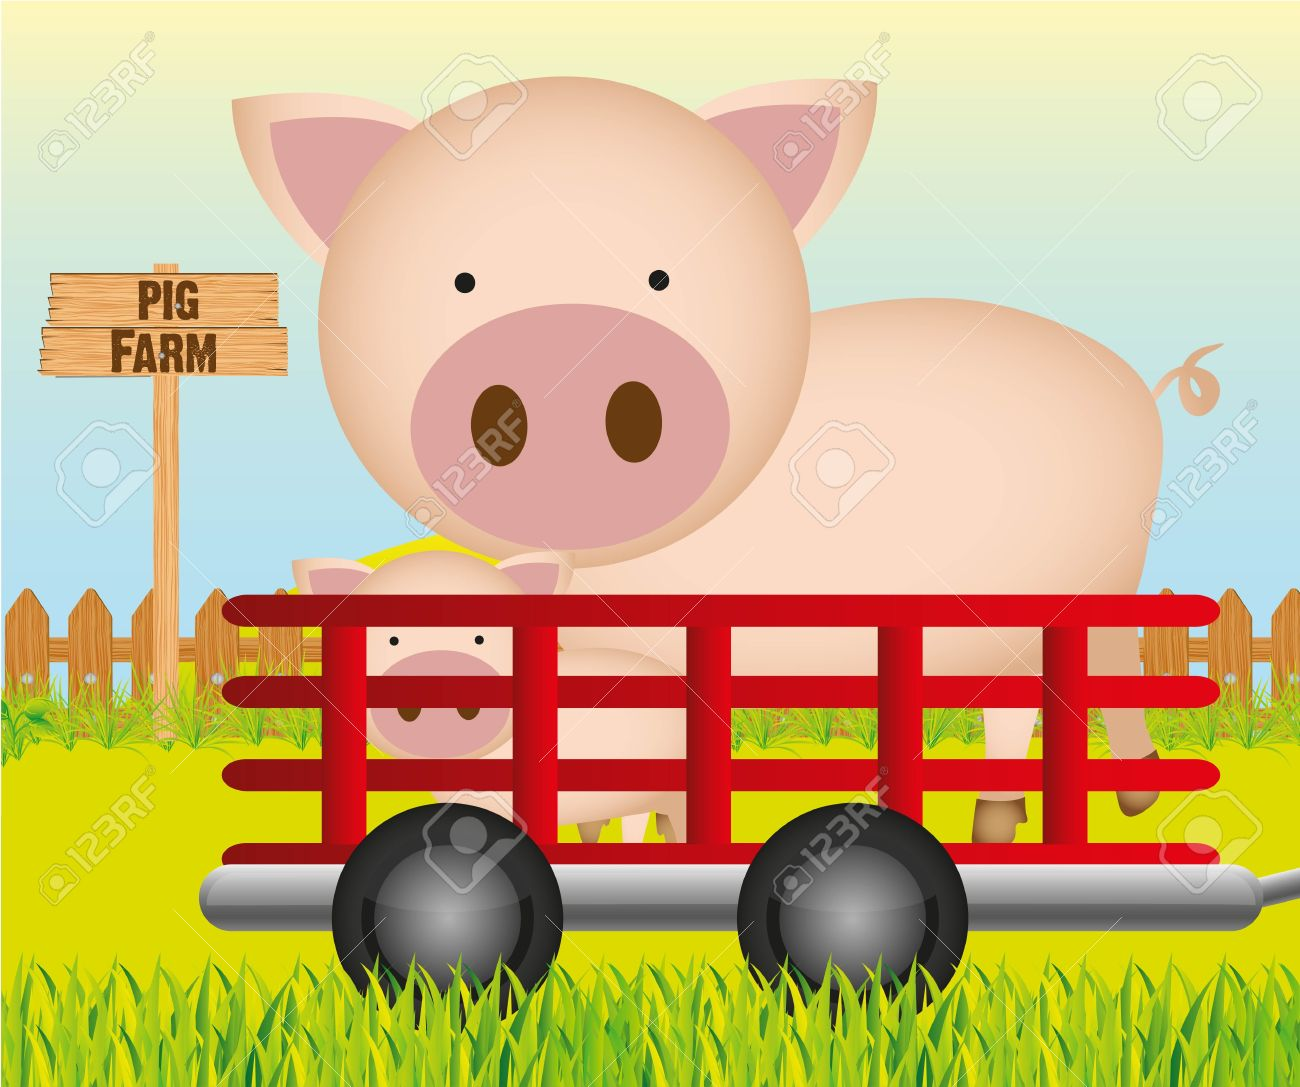 Trailer With Pig Farm Background